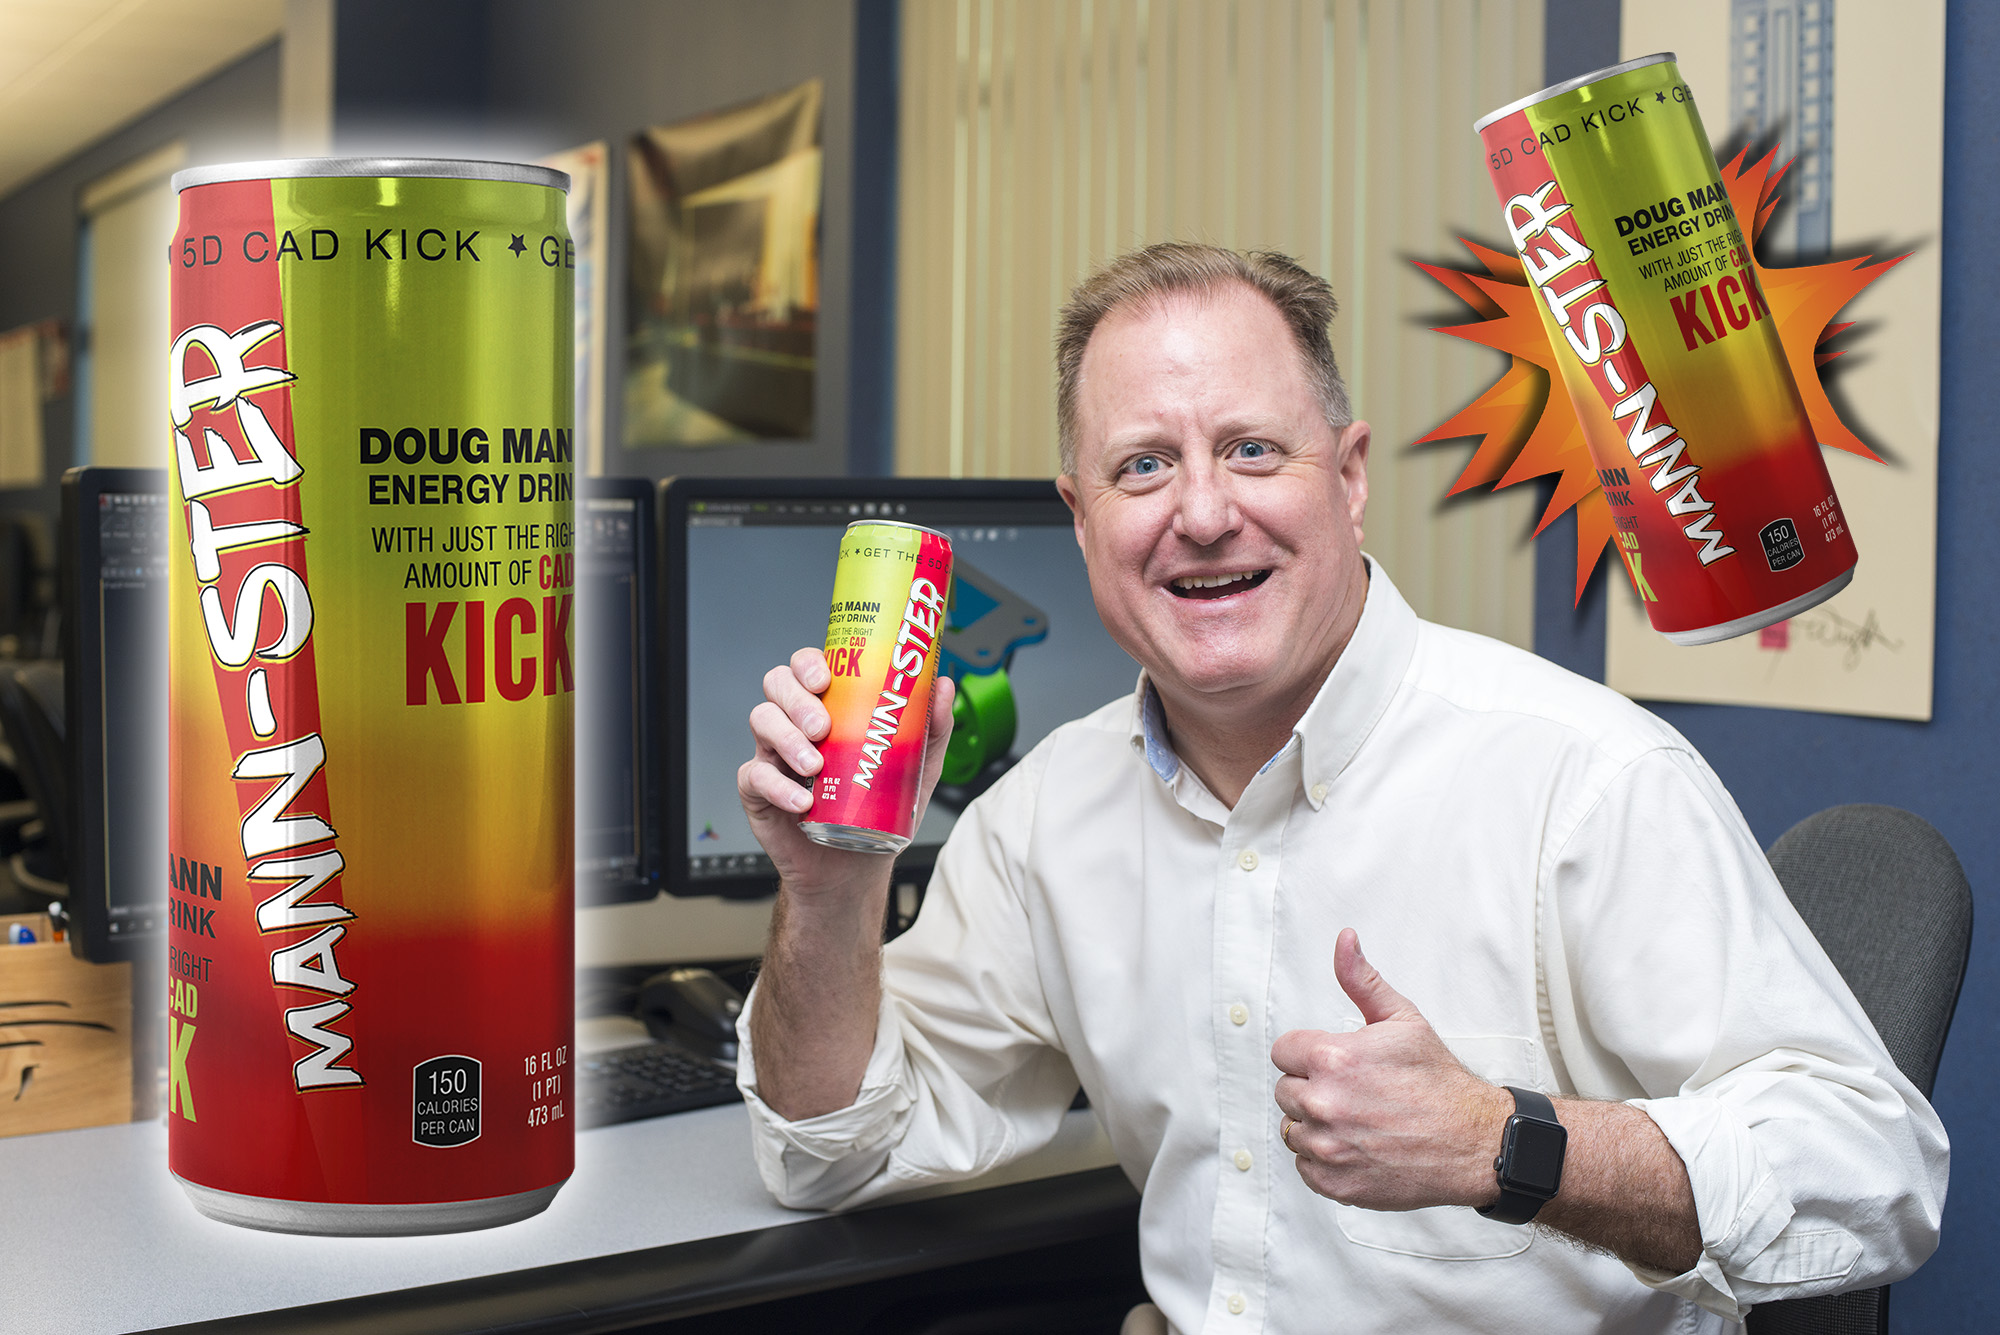 CAD professor Doug Mann gives a thumbs up while holding a can of MANN-STER energy drink in the CAD Lab.